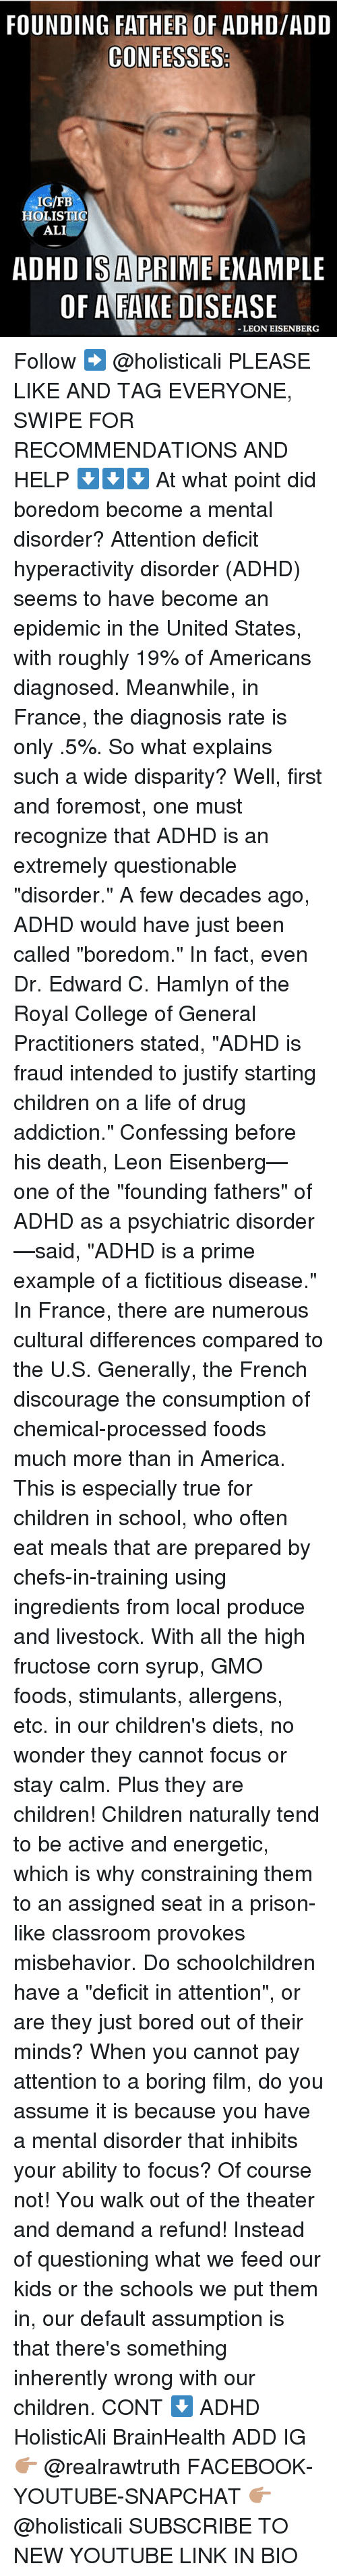 "Oftenly: FOUNDING FATHER OF ADHD/ADD  IG/FB  HOLISTIO  ALI  ADHD IS A PRIME ENAMPLE  OF AFAKE DISEASE  LEON EISENBERG Follow ➡️ @holisticali PLEASE LIKE AND TAG EVERYONE, SWIPE FOR RECOMMENDATIONS AND HELP ⬇️⬇️⬇️ At what point did boredom become a mental disorder? Attention deficit hyperactivity disorder (ADHD) seems to have become an epidemic in the United States, with roughly 19% of Americans diagnosed. Meanwhile, in France, the diagnosis rate is only .5%. So what explains such a wide disparity? Well, first and foremost, one must recognize that ADHD is an extremely questionable ""disorder."" A few decades ago, ADHD would have just been called ""boredom."" In fact, even Dr. Edward C. Hamlyn of the Royal College of General Practitioners stated, ""ADHD is fraud intended to justify starting children on a life of drug addiction."" Confessing before his death, Leon Eisenberg—one of the ""founding fathers"" of ADHD as a psychiatric disorder—said, ""ADHD is a prime example of a fictitious disease."" In France, there are numerous cultural differences compared to the U.S. Generally, the French discourage the consumption of chemical-processed foods much more than in America. This is especially true for children in school, who often eat meals that are prepared by chefs-in-training using ingredients from local produce and livestock. With all the high fructose corn syrup, GMO foods, stimulants, allergens, etc. in our children's diets, no wonder they cannot focus or stay calm. Plus they are children! Children naturally tend to be active and energetic, which is why constraining them to an assigned seat in a prison-like classroom provokes misbehavior. Do schoolchildren have a ""deficit in attention"", or are they just bored out of their minds? When you cannot pay attention to a boring film, do you assume it is because you have a mental disorder that inhibits your ability to focus? Of course not! You walk out of the theater and demand a refund! Instead of questioning what we feed our kids or the schools we put them in, our default assumption is that there's something inherently wrong with our children. CONT ⬇️ ADHD HolisticAli BrainHealth ADD IG 👉🏽 @realrawtruth FACEBOOK-YOUTUBE-SNAPCHAT 👉🏽 @holisticali SUBSCRIBE TO NEW YOUTUBE LINK IN BIO"